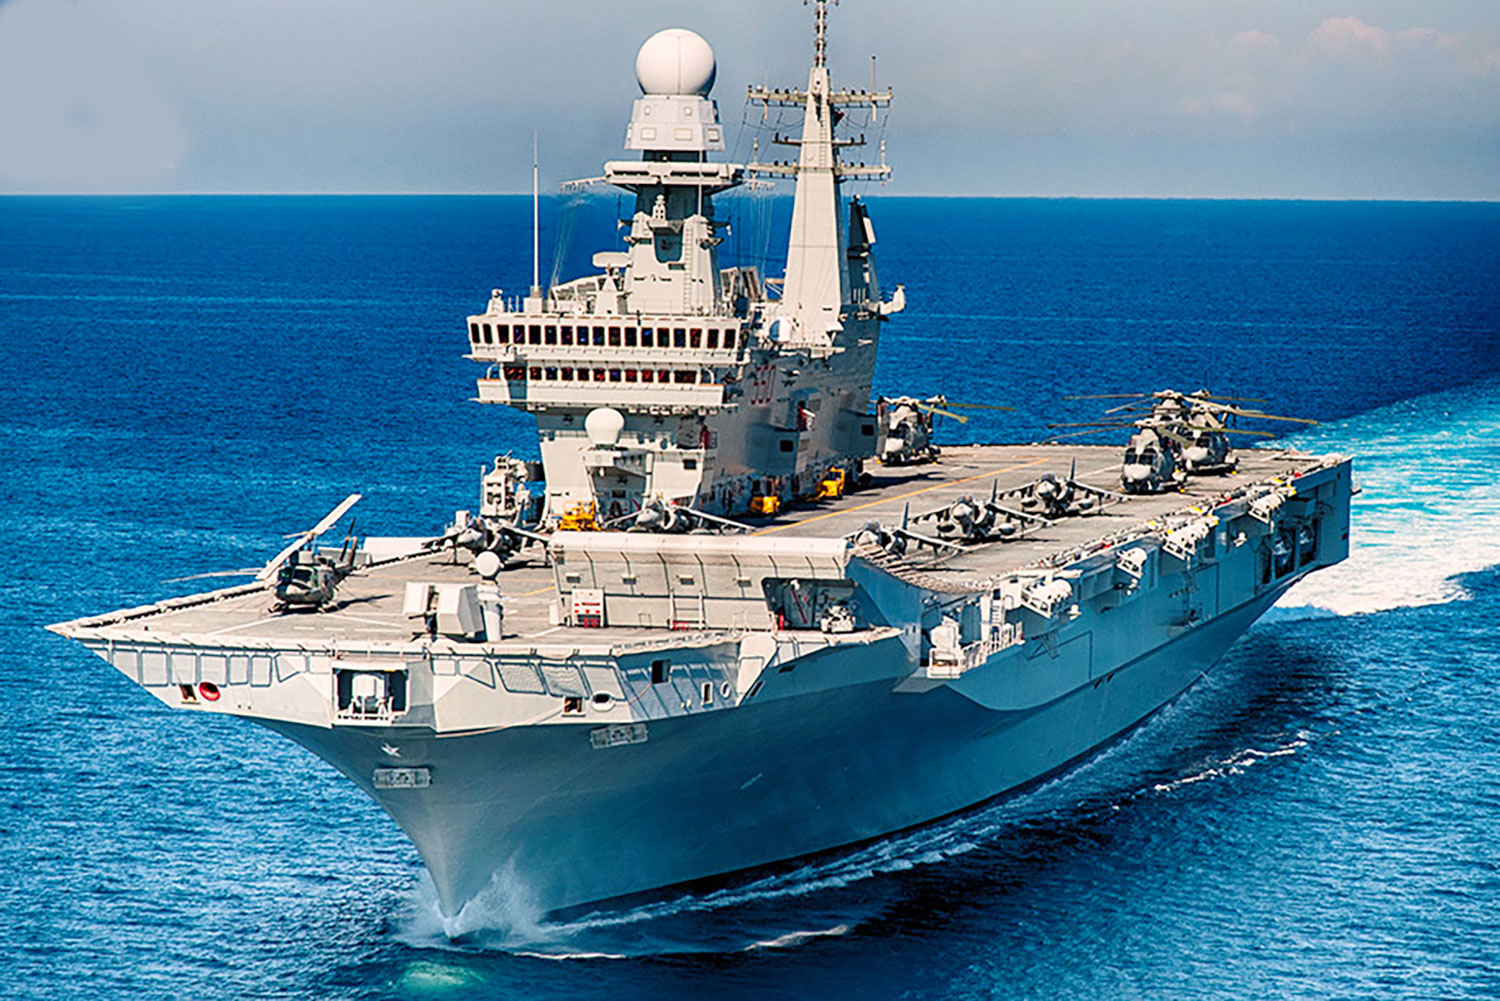 Amazing Aircraft Carrier Cavour of the Italian Navy. The ship will stop at Civitavecchia and it will be open to visitors